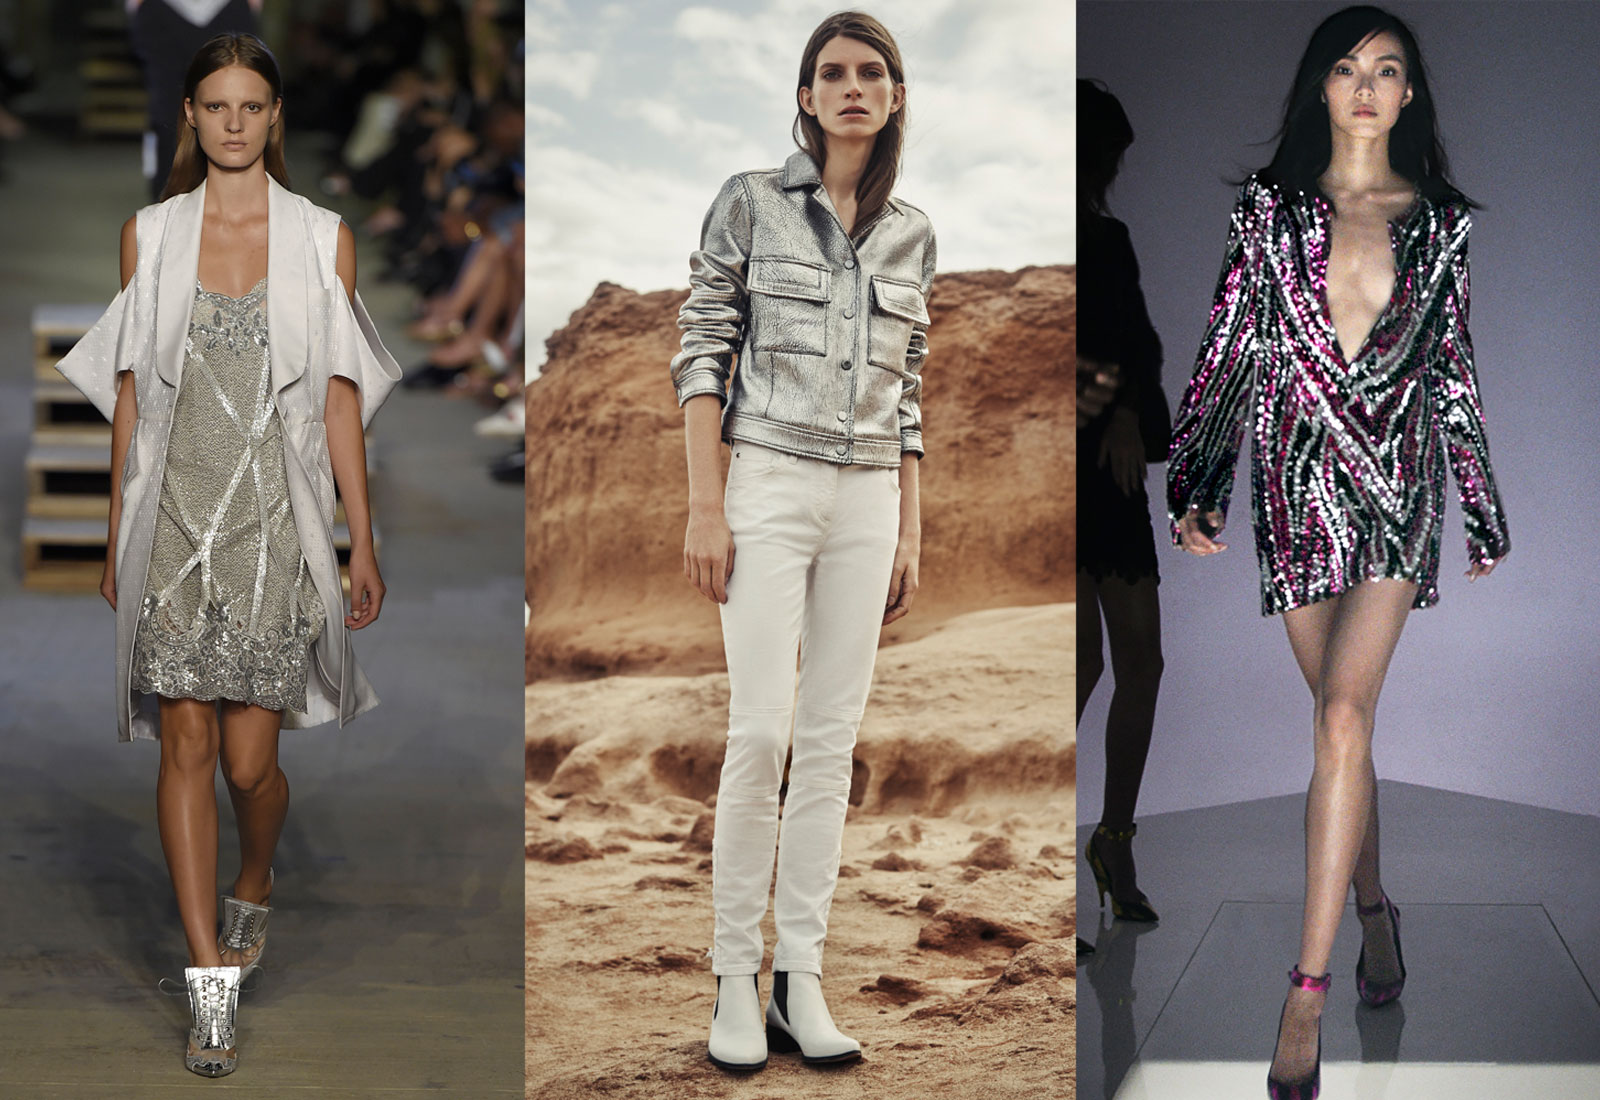 spring summer 2016 metallics fashion trend from givenchy belstaff and tom ford 1600 x 1100